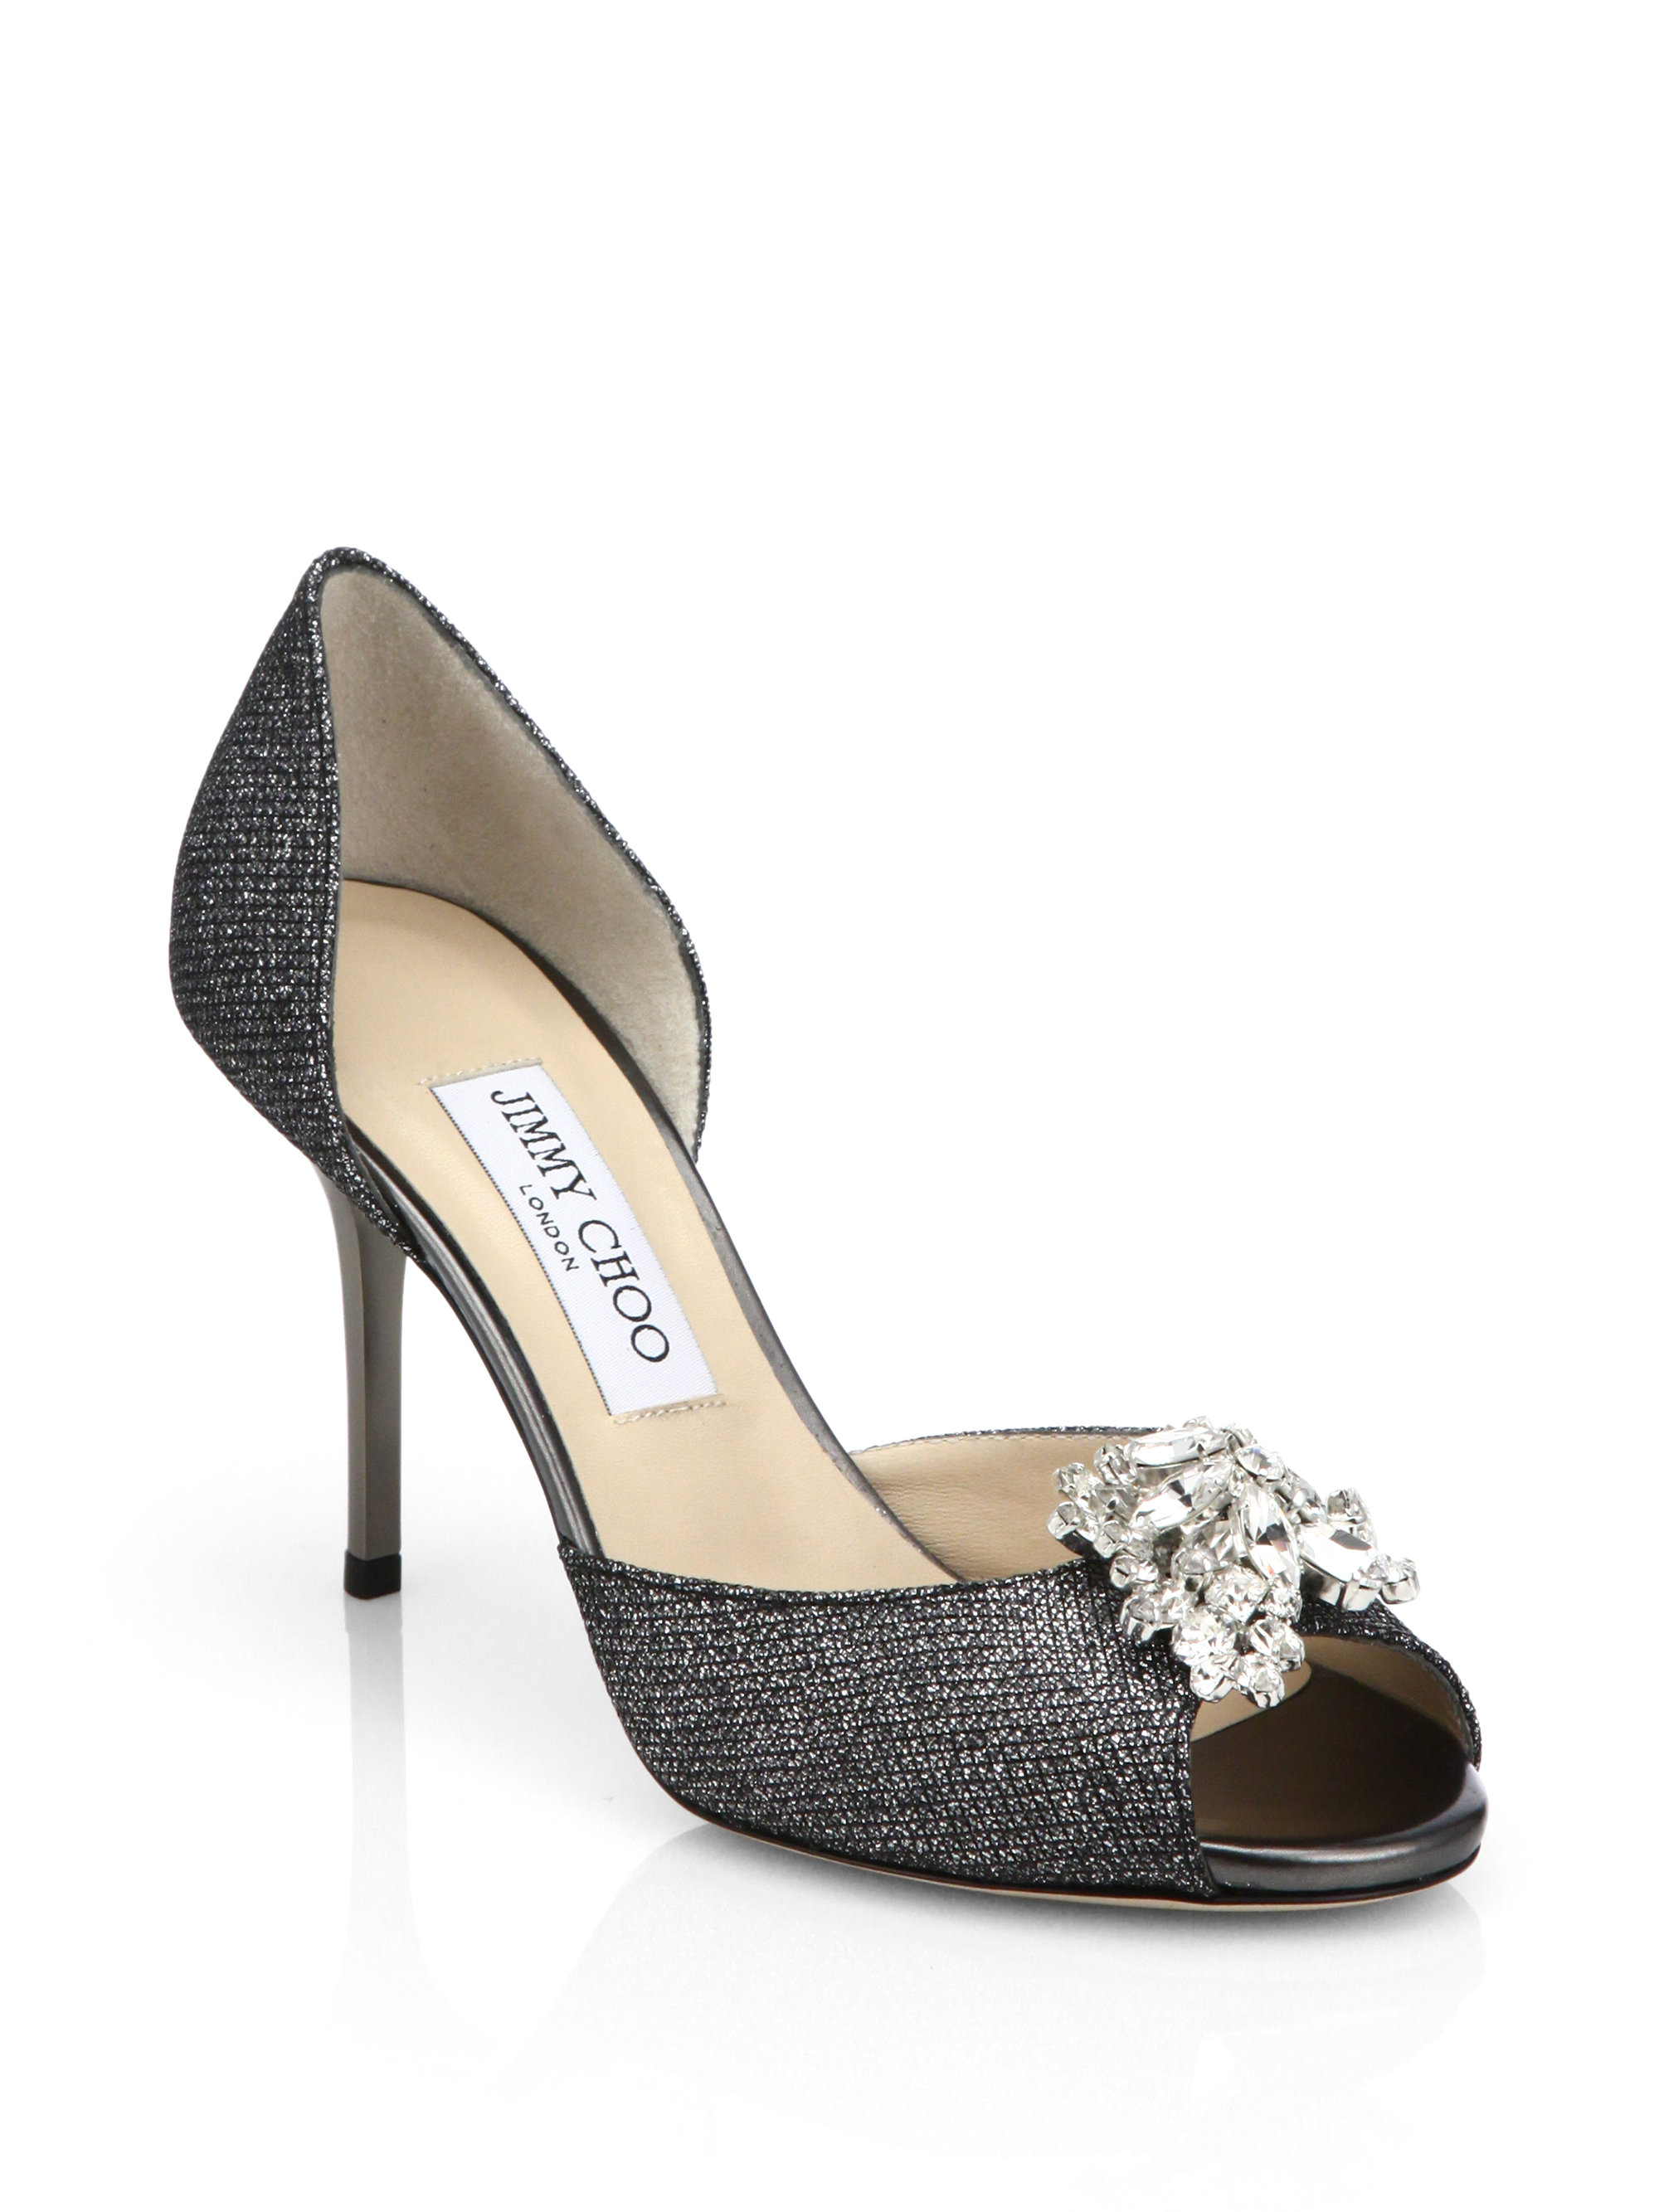 Jimmy Choo Satin d'Orsay Pumps outlet order excellent for sale buy cheap 100% original discount latest collections good selling cheap price LqDIsOxqvF